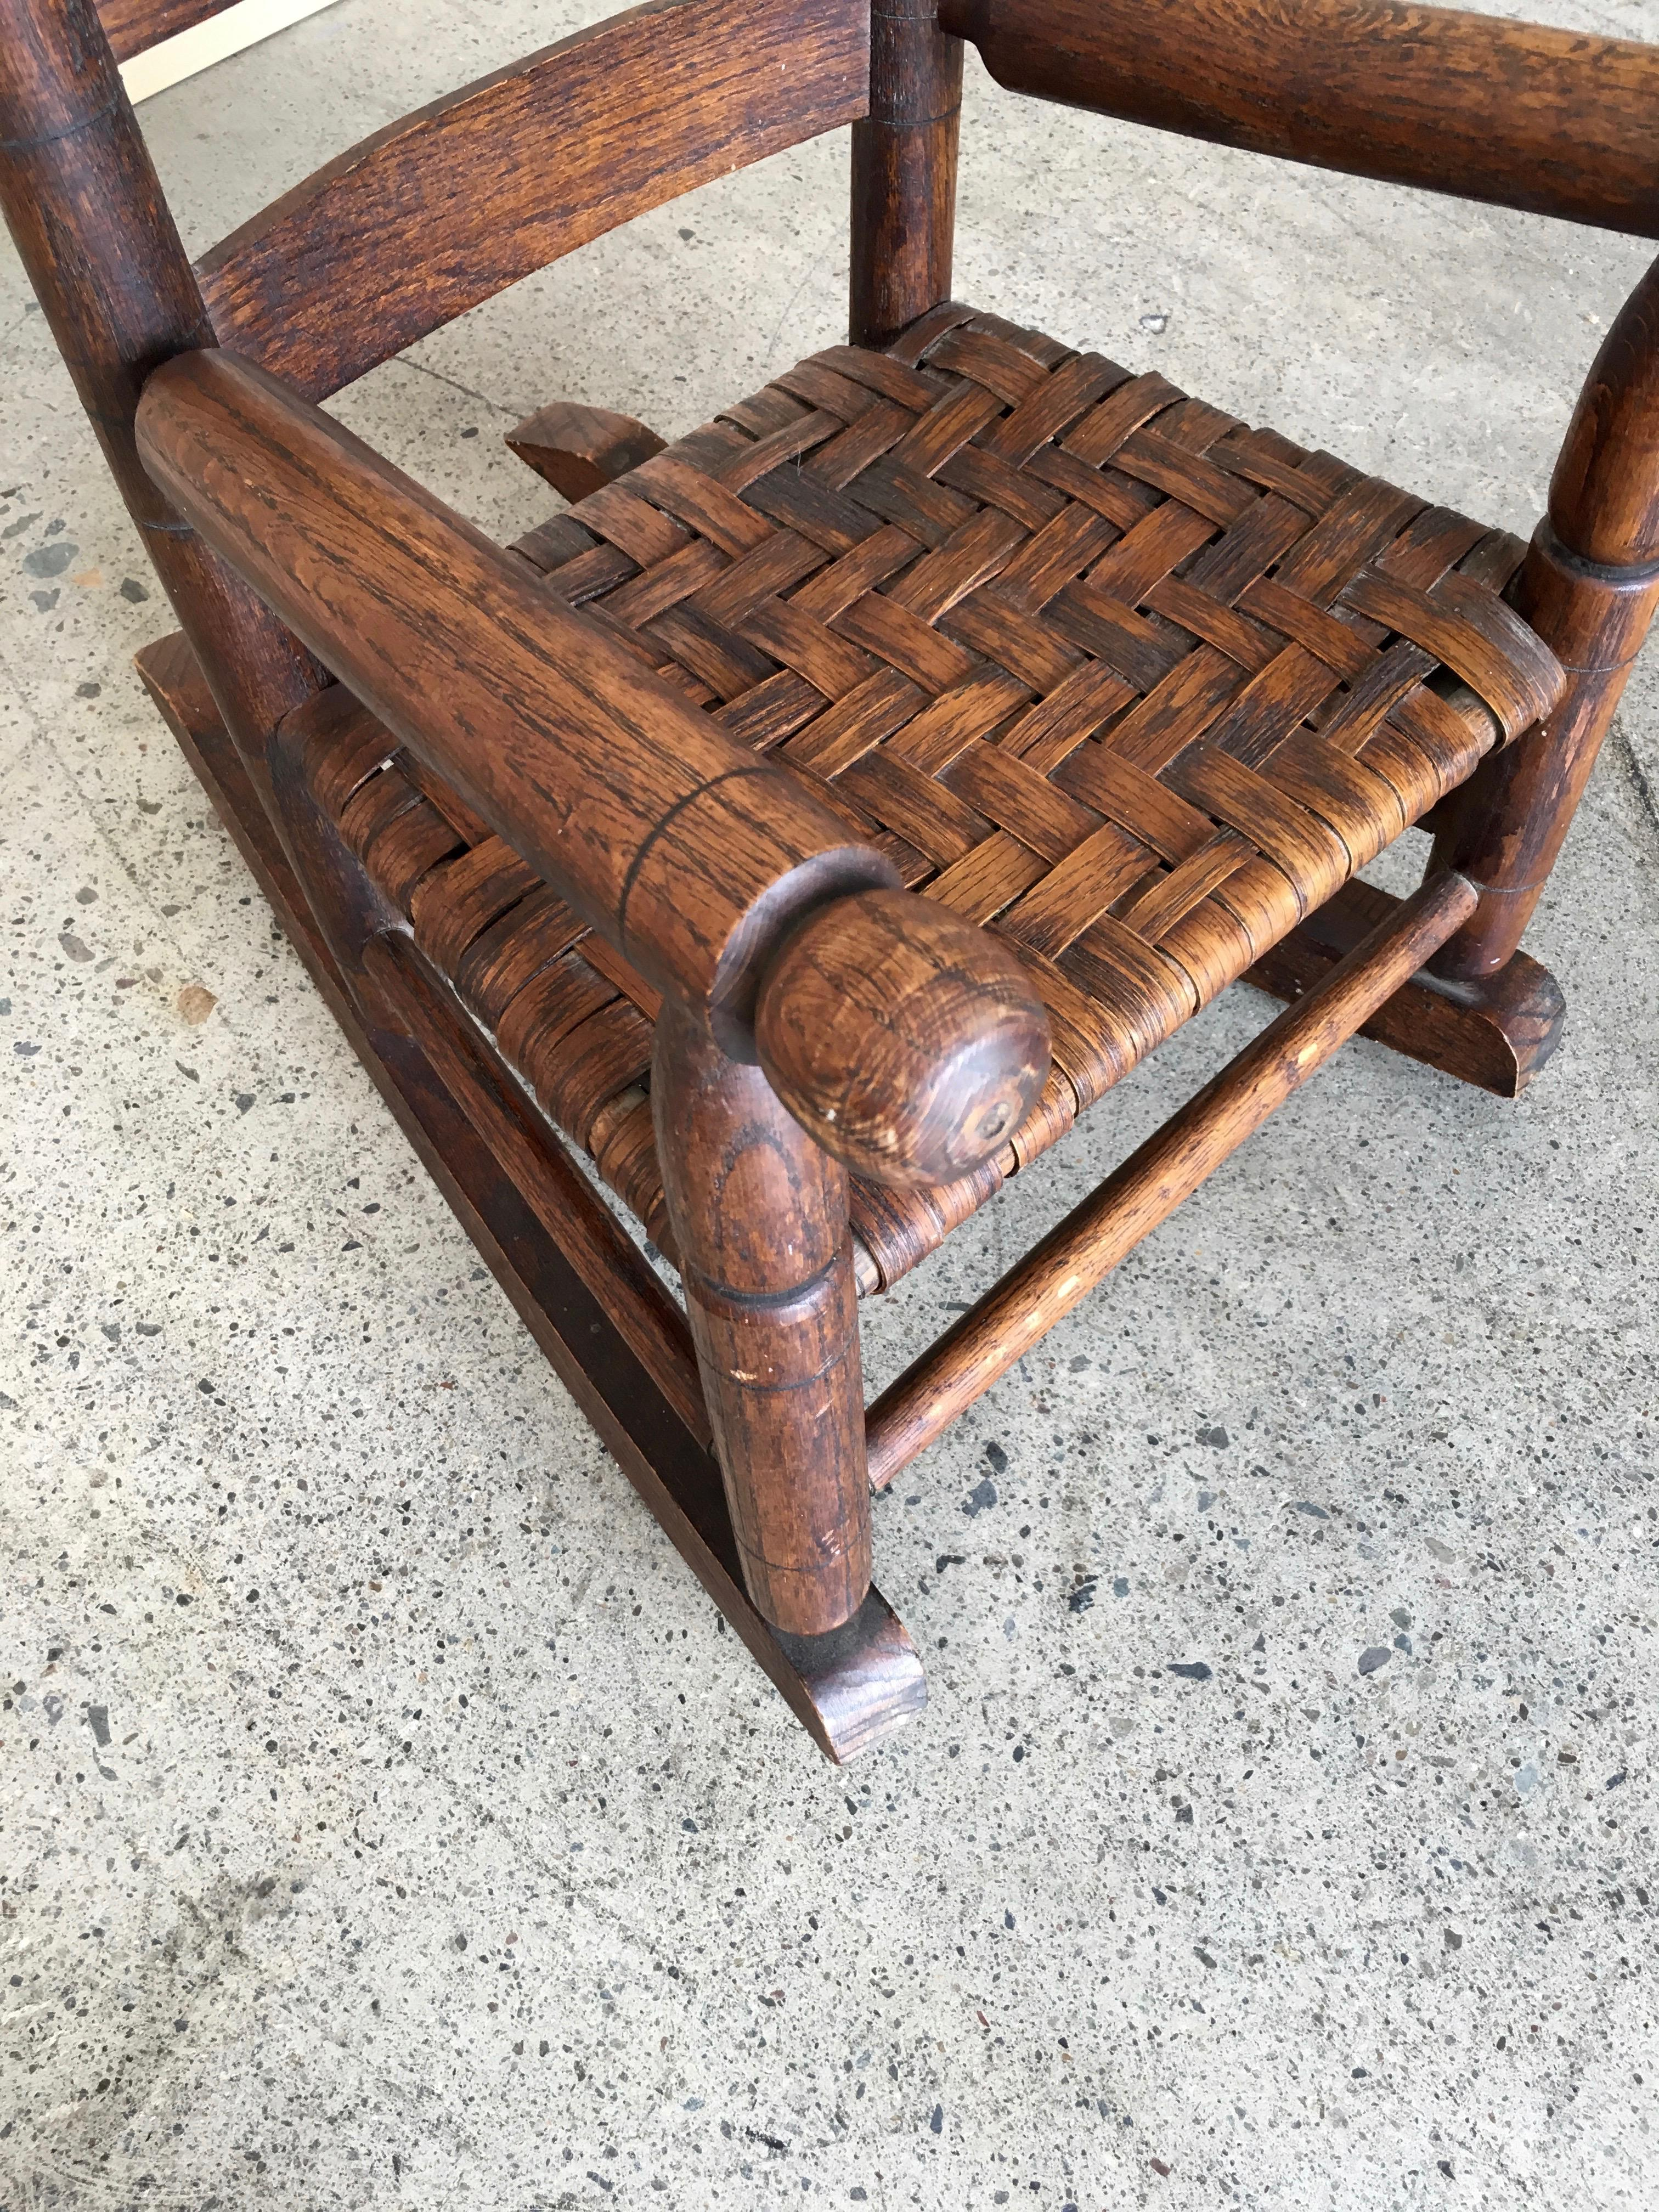 Basket Weave Country Childu0027s Rocking Chair   Image 3 ...